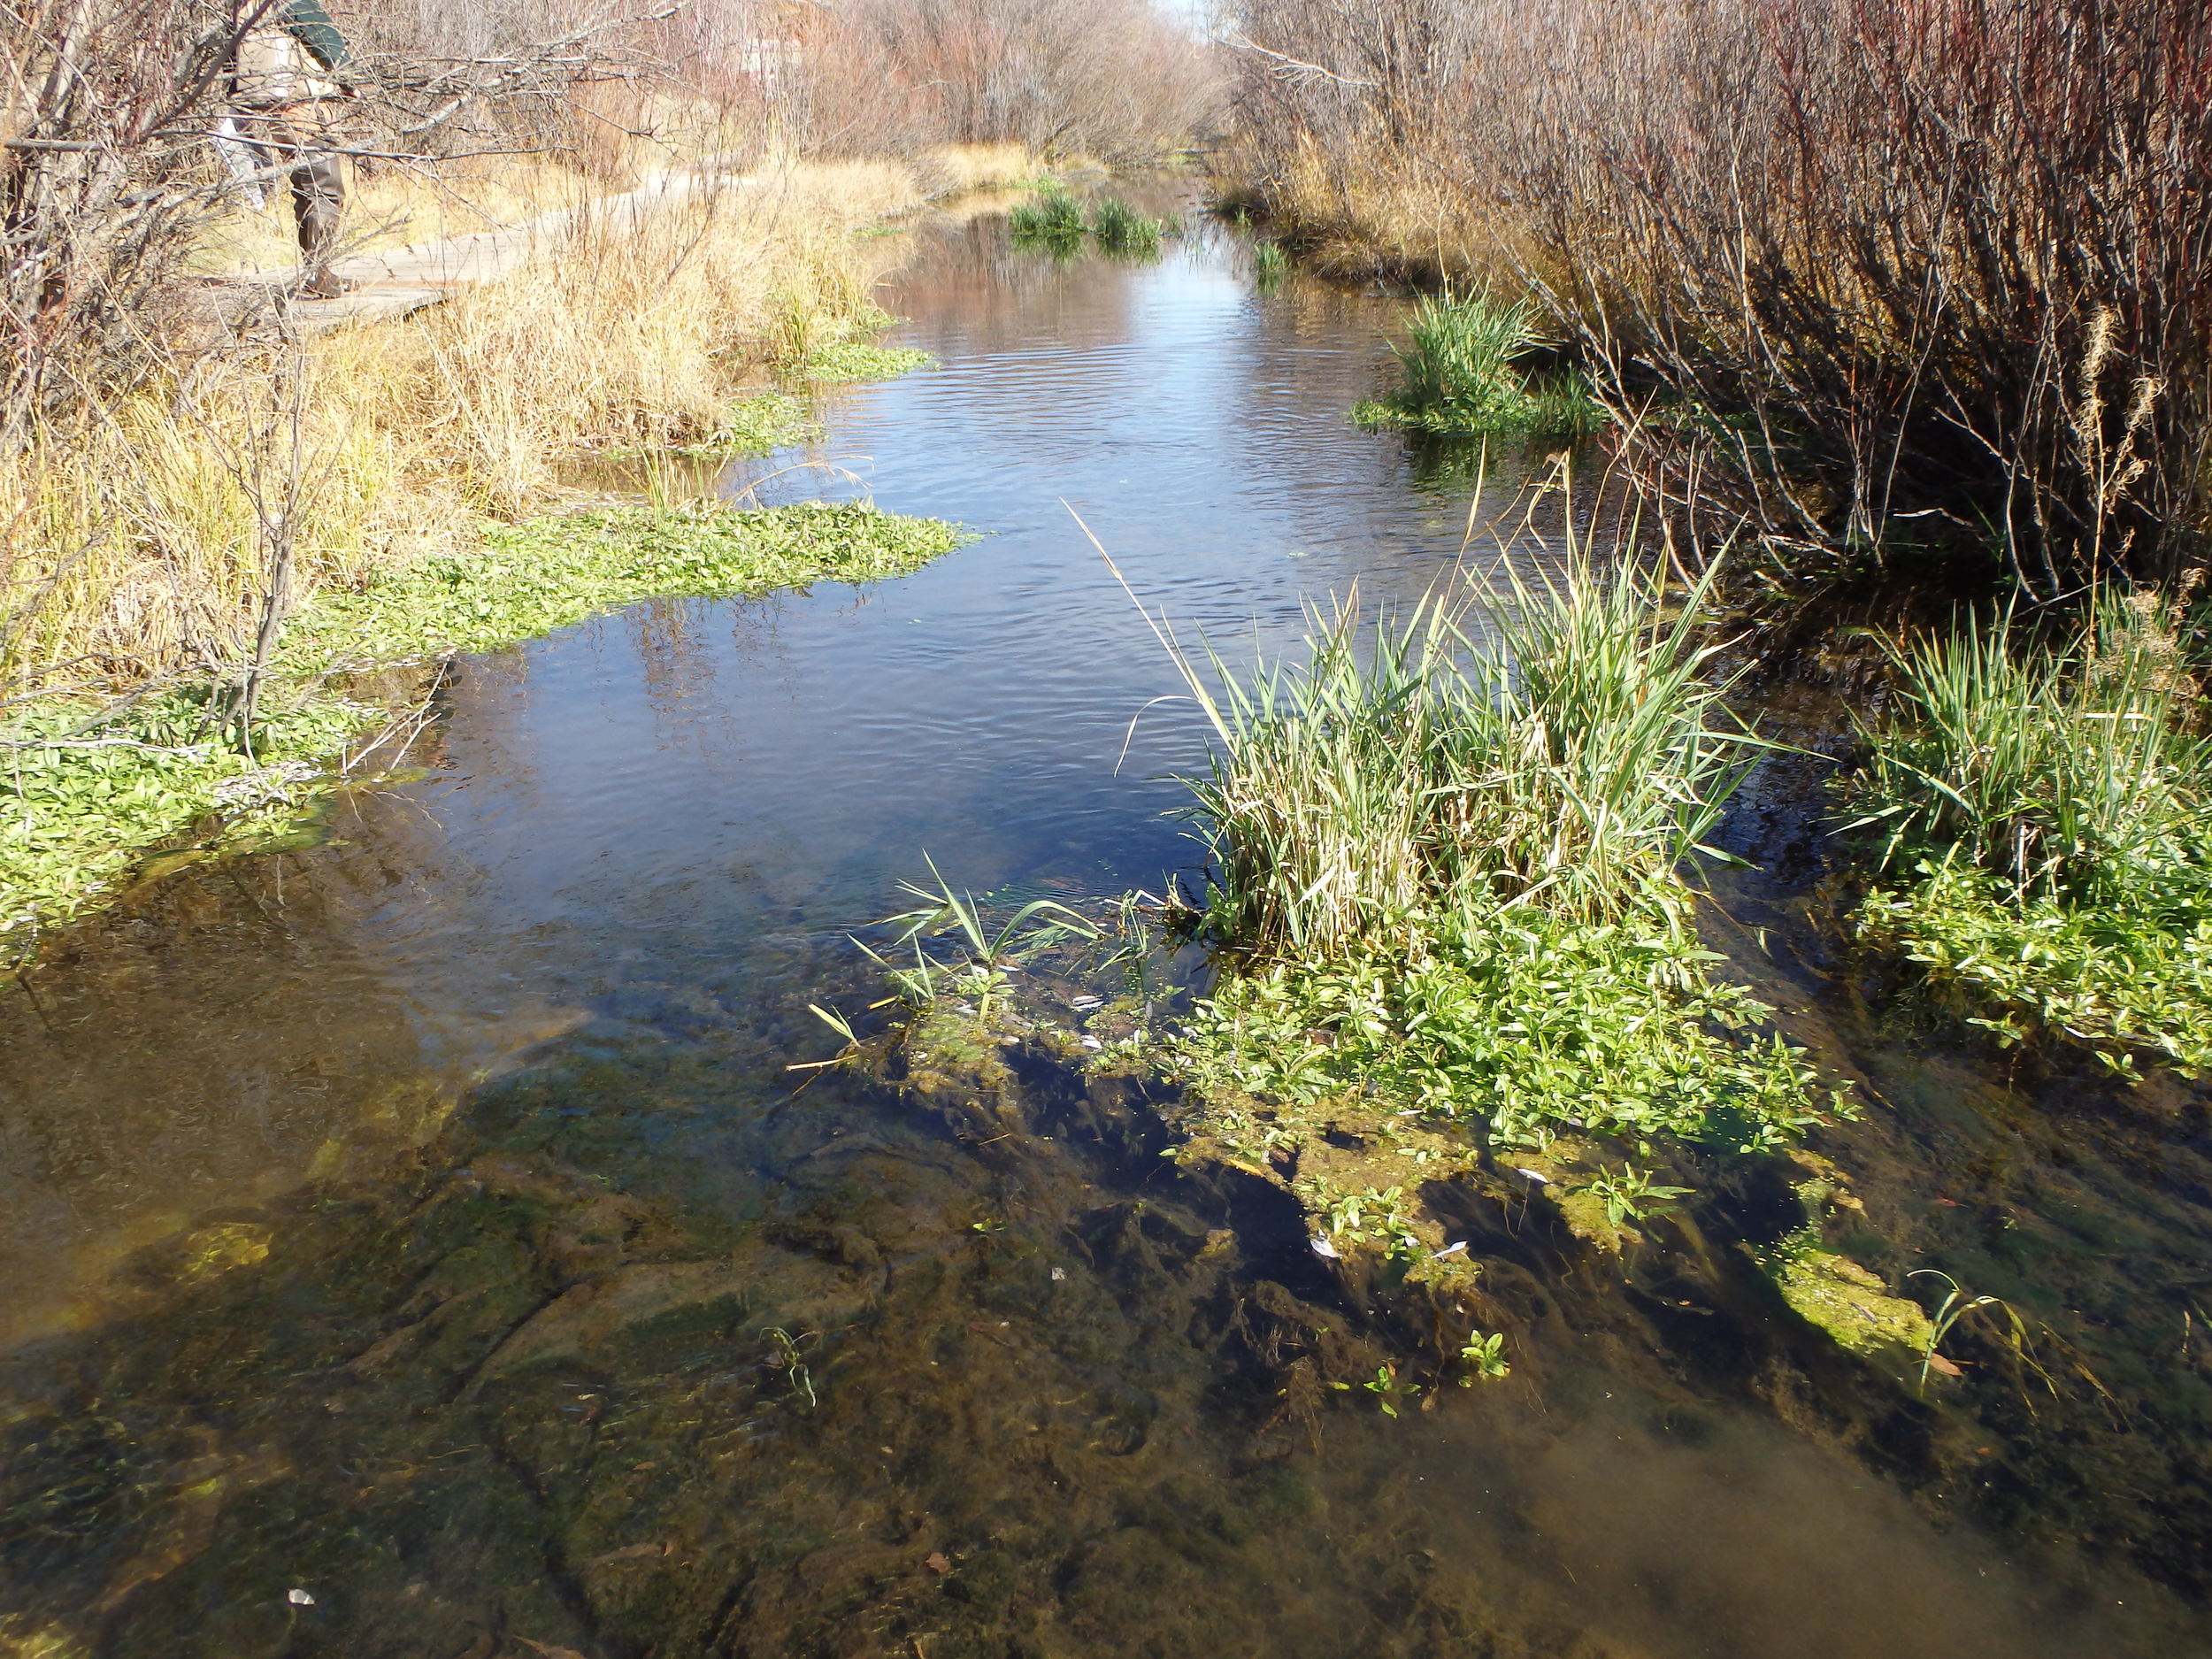 Before - the wide, slow creek offers no juvenile trout cover except clumps of invasive grasses